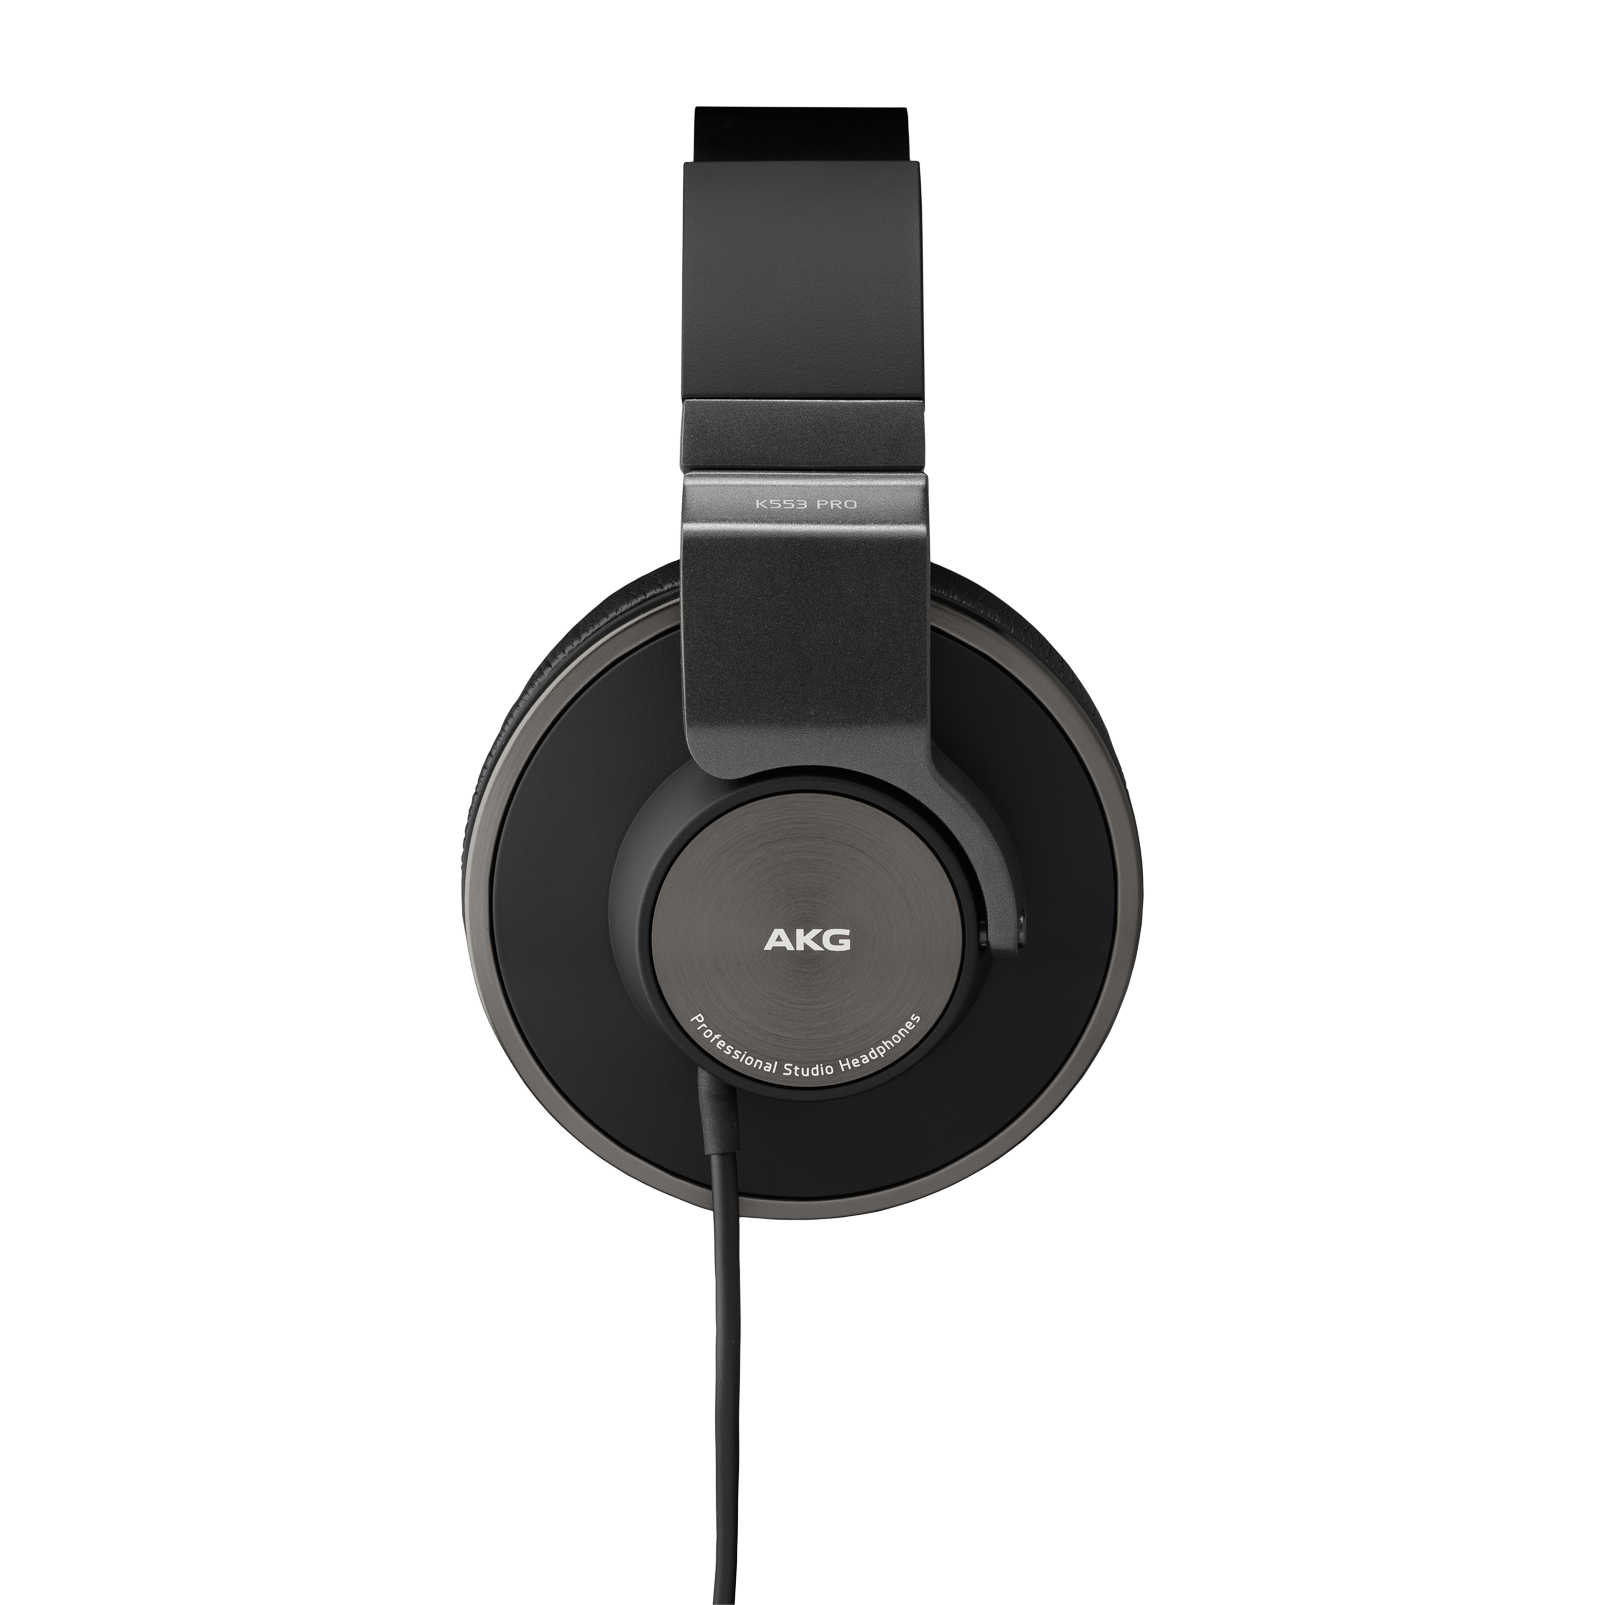 K553 PRO (discontinued)